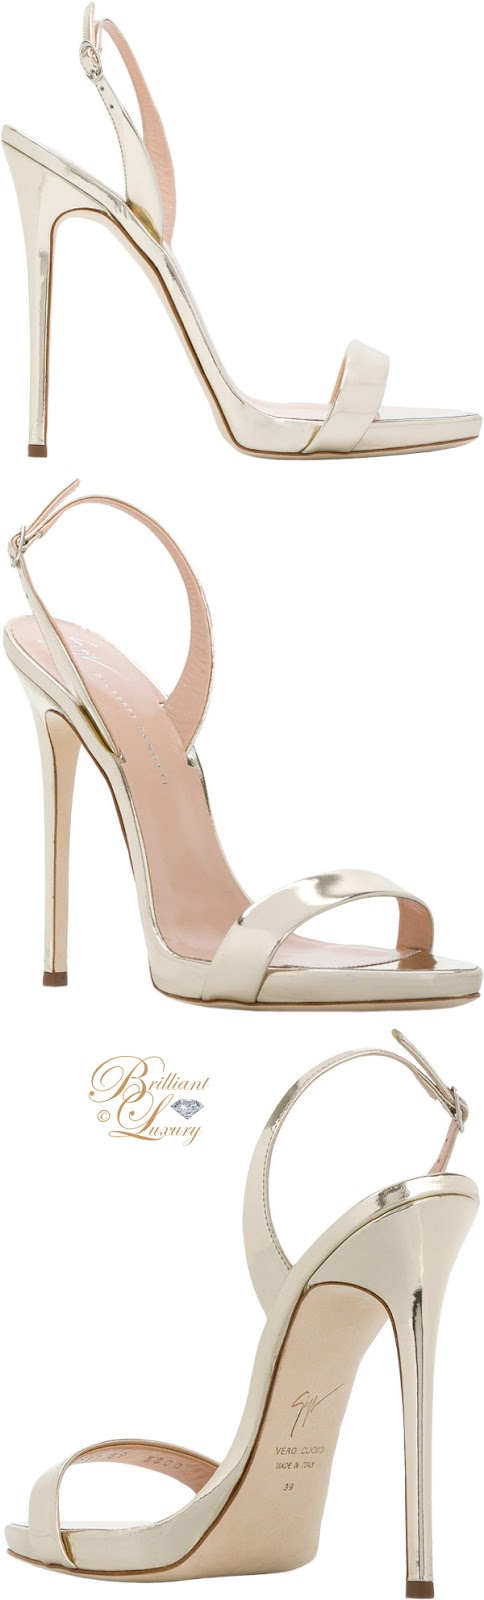 Brilliant Luxury ♦  Giuseppe Zanotti Sophie sandals